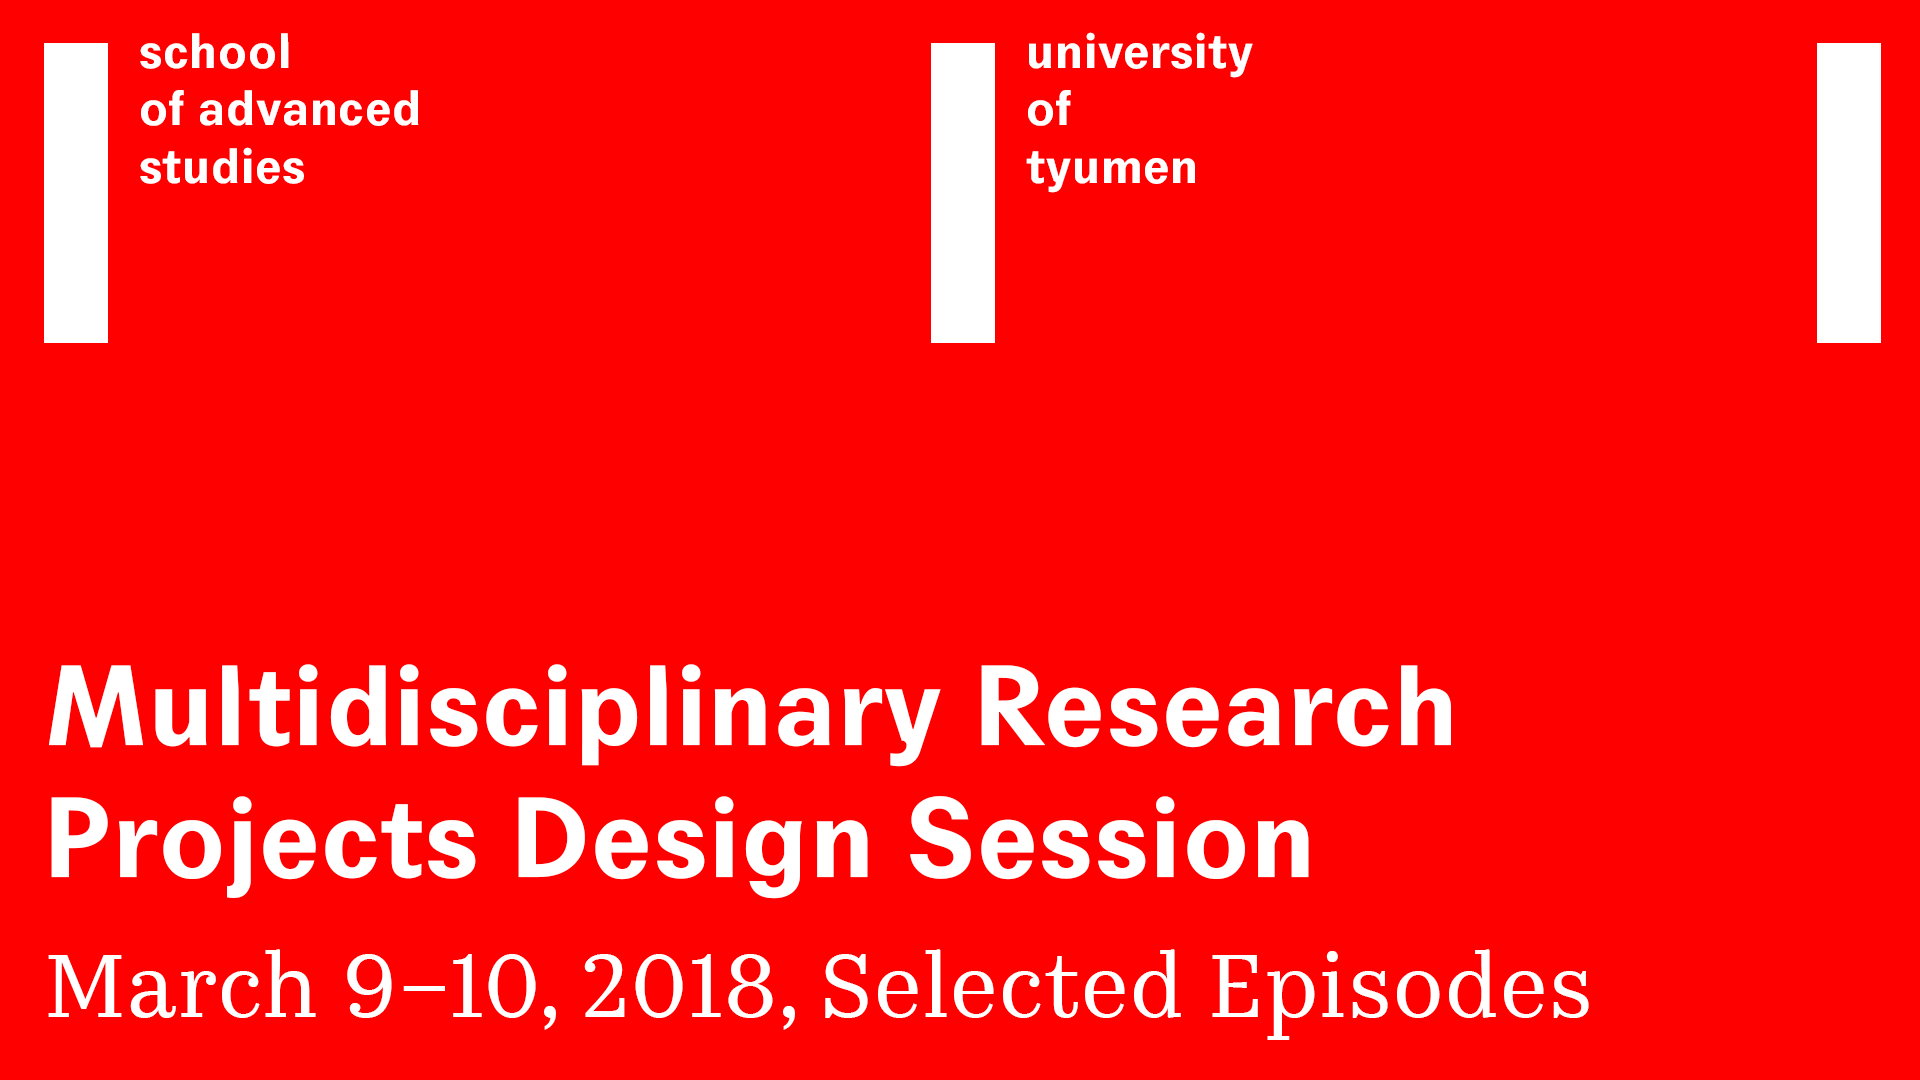 Select Discussion Episodes from Multidisciplinary Research Projects Design Session